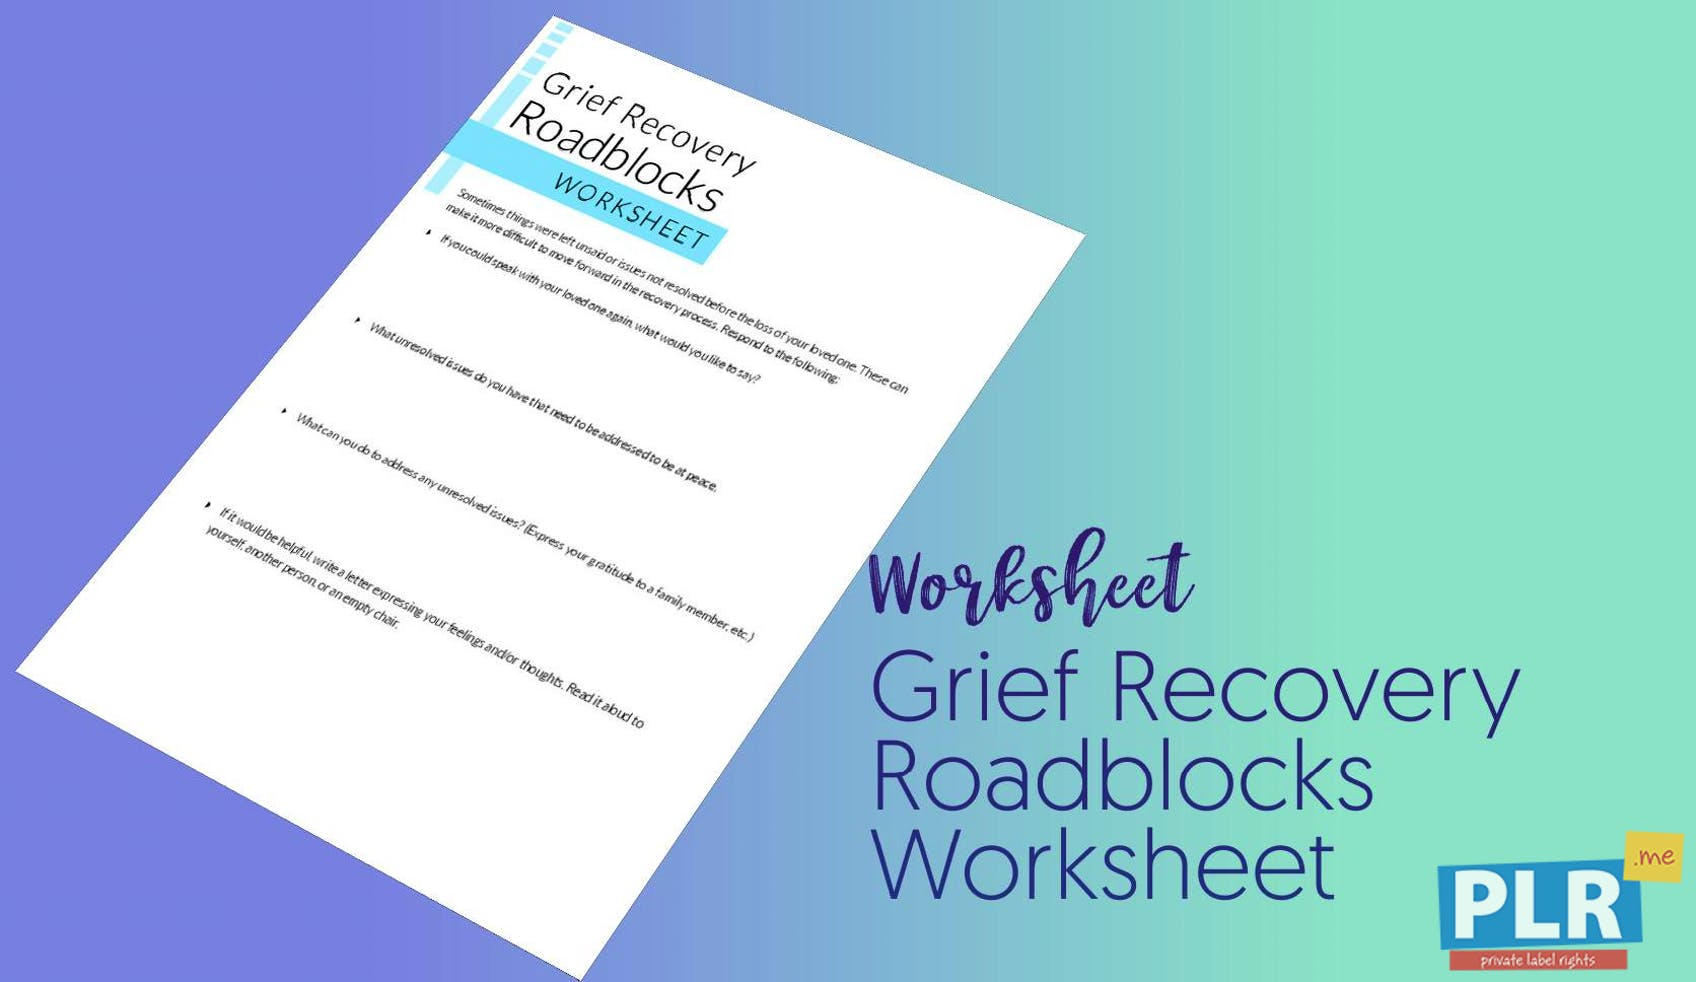 PLR Worksheets - Grief Recovery Roadblocks Worksheet - PLR.me